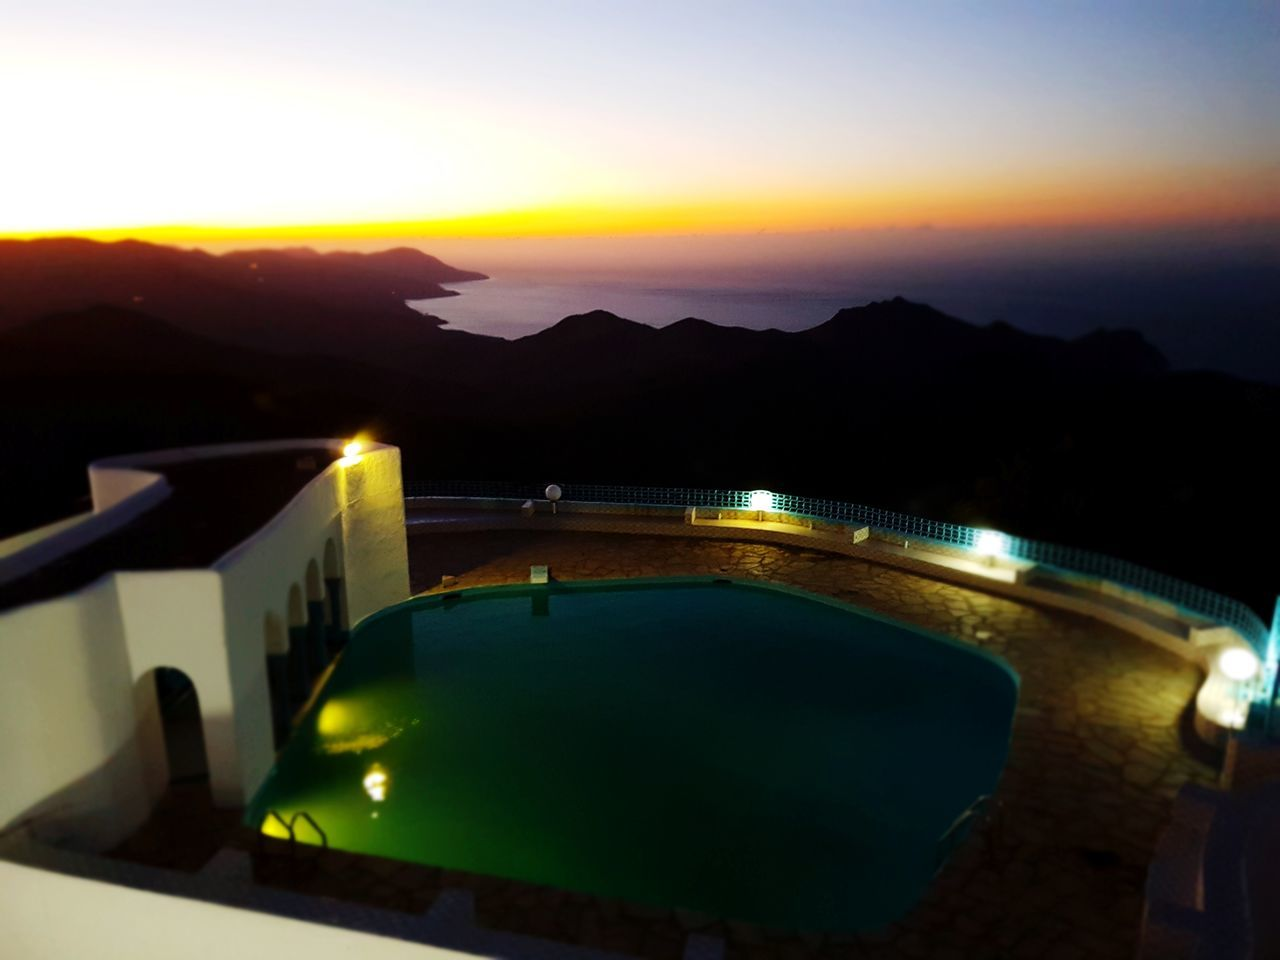 Night Water Sunset Mountain Luxury Tourist Resort Architecture Swimming Pool Travel Destinations Scenics Sky Nature No People Outdoors